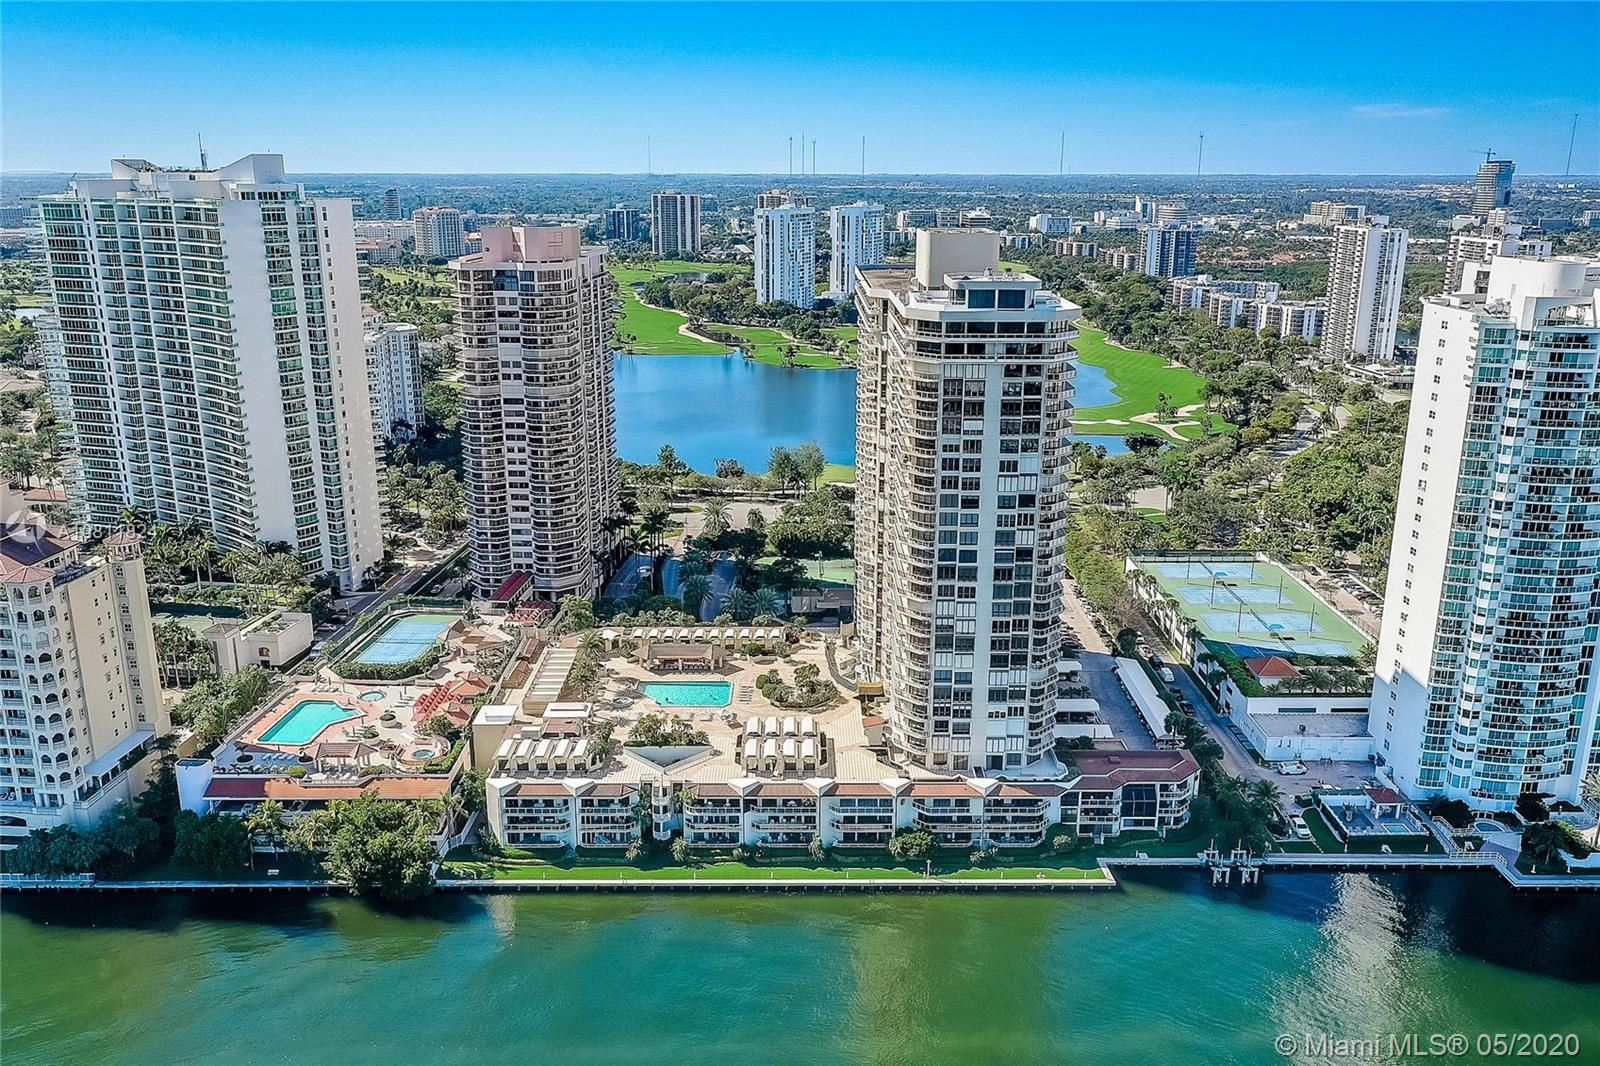 20191 E Country Club Dr #2301, Aventura, FL 33180 - #: A10811824